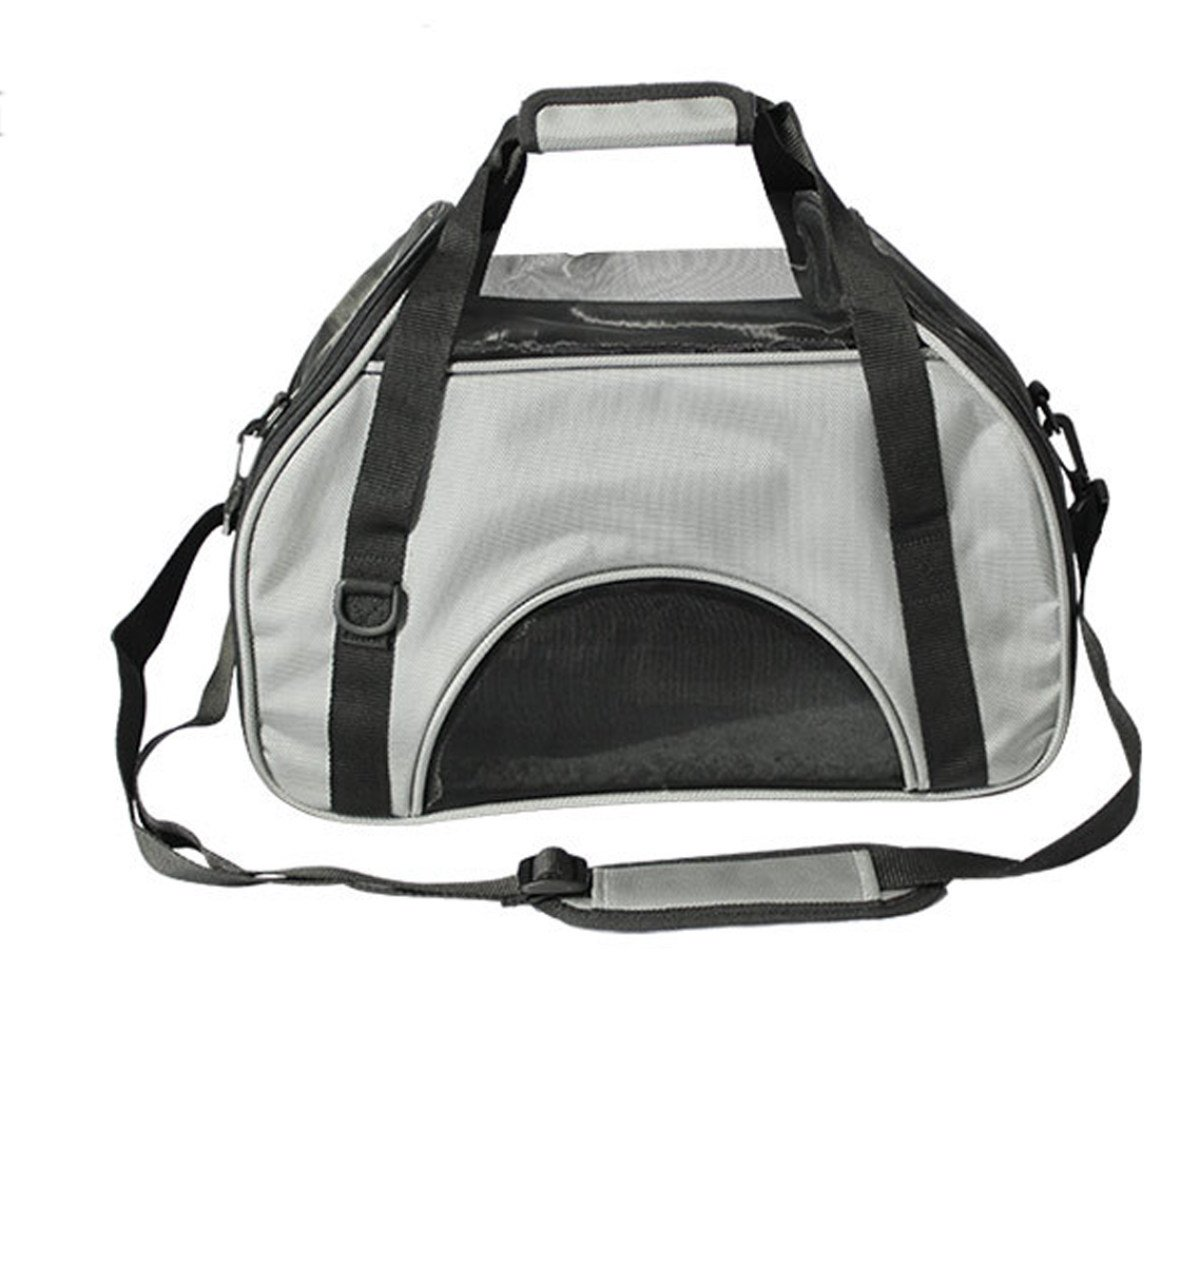 B Pet Carrier For Small Dogs And Cats Travel   Airlines Approved Animal Cage   Soft Sides   Travel Comfort   Lightweight,B